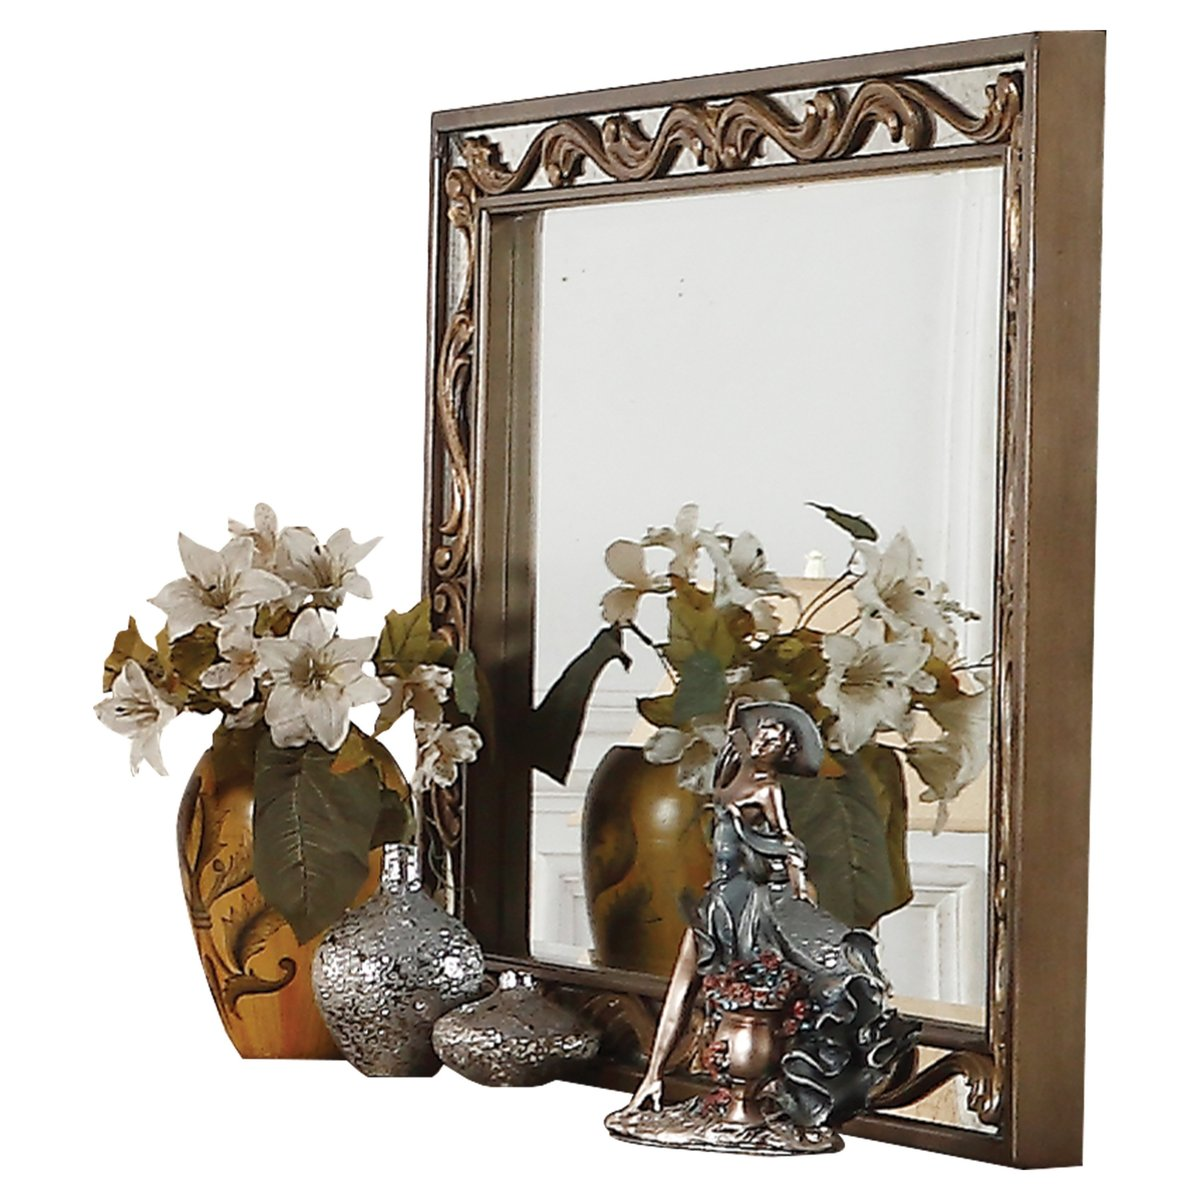 Mirror: Rectangular Wooden Mirror With Raised Scrolled Inlays